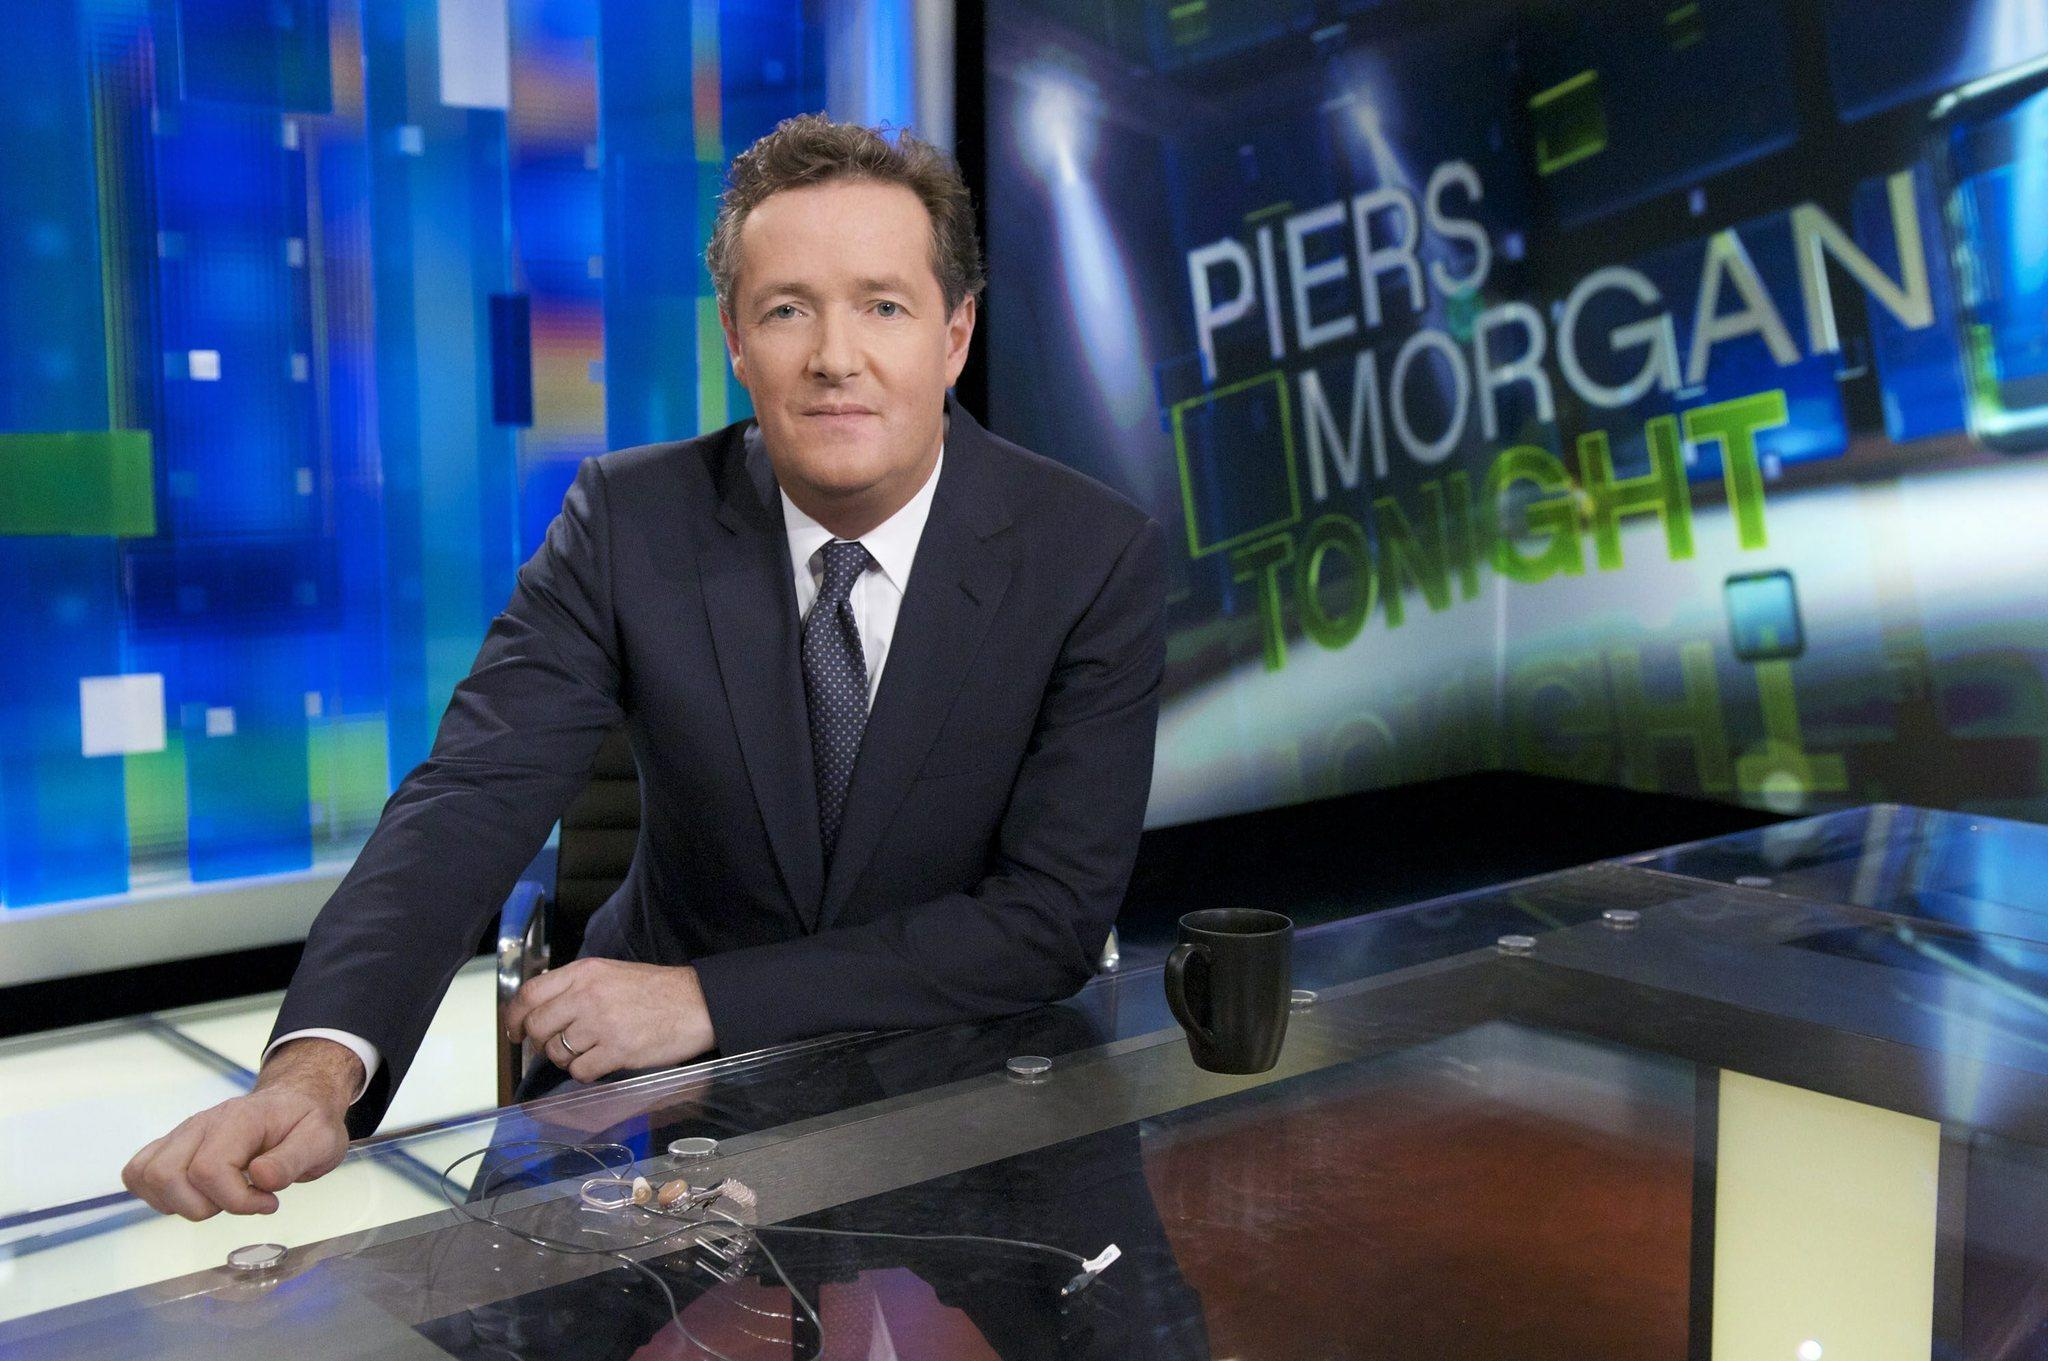 Piers Morgan, above, interviewed transgender advocate and author Janet Mock.